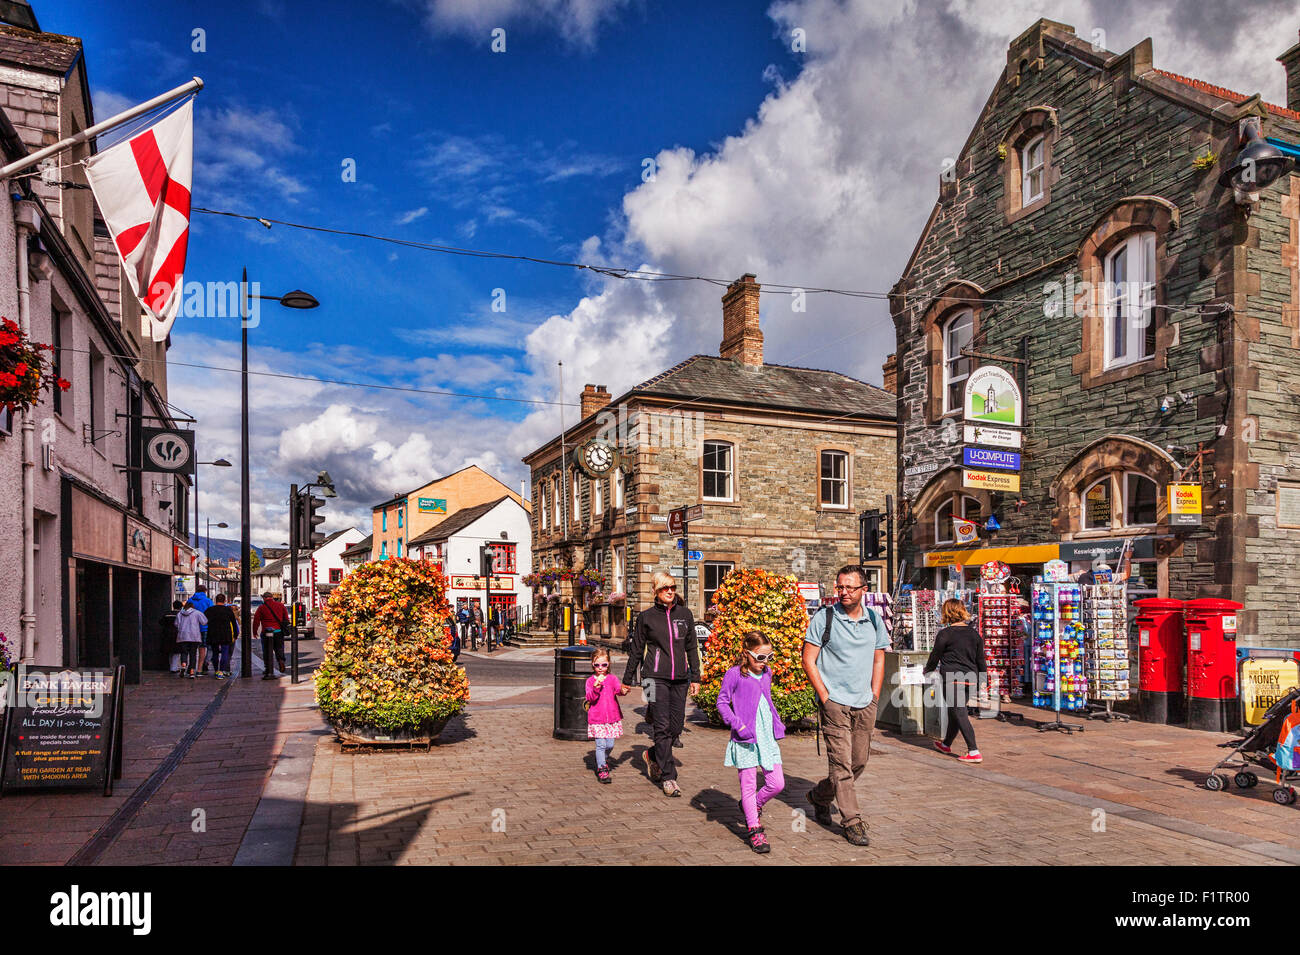 Tourists strolling in Keswick High Street on a sunny autumn day, Cumbria, England. - Stock Image